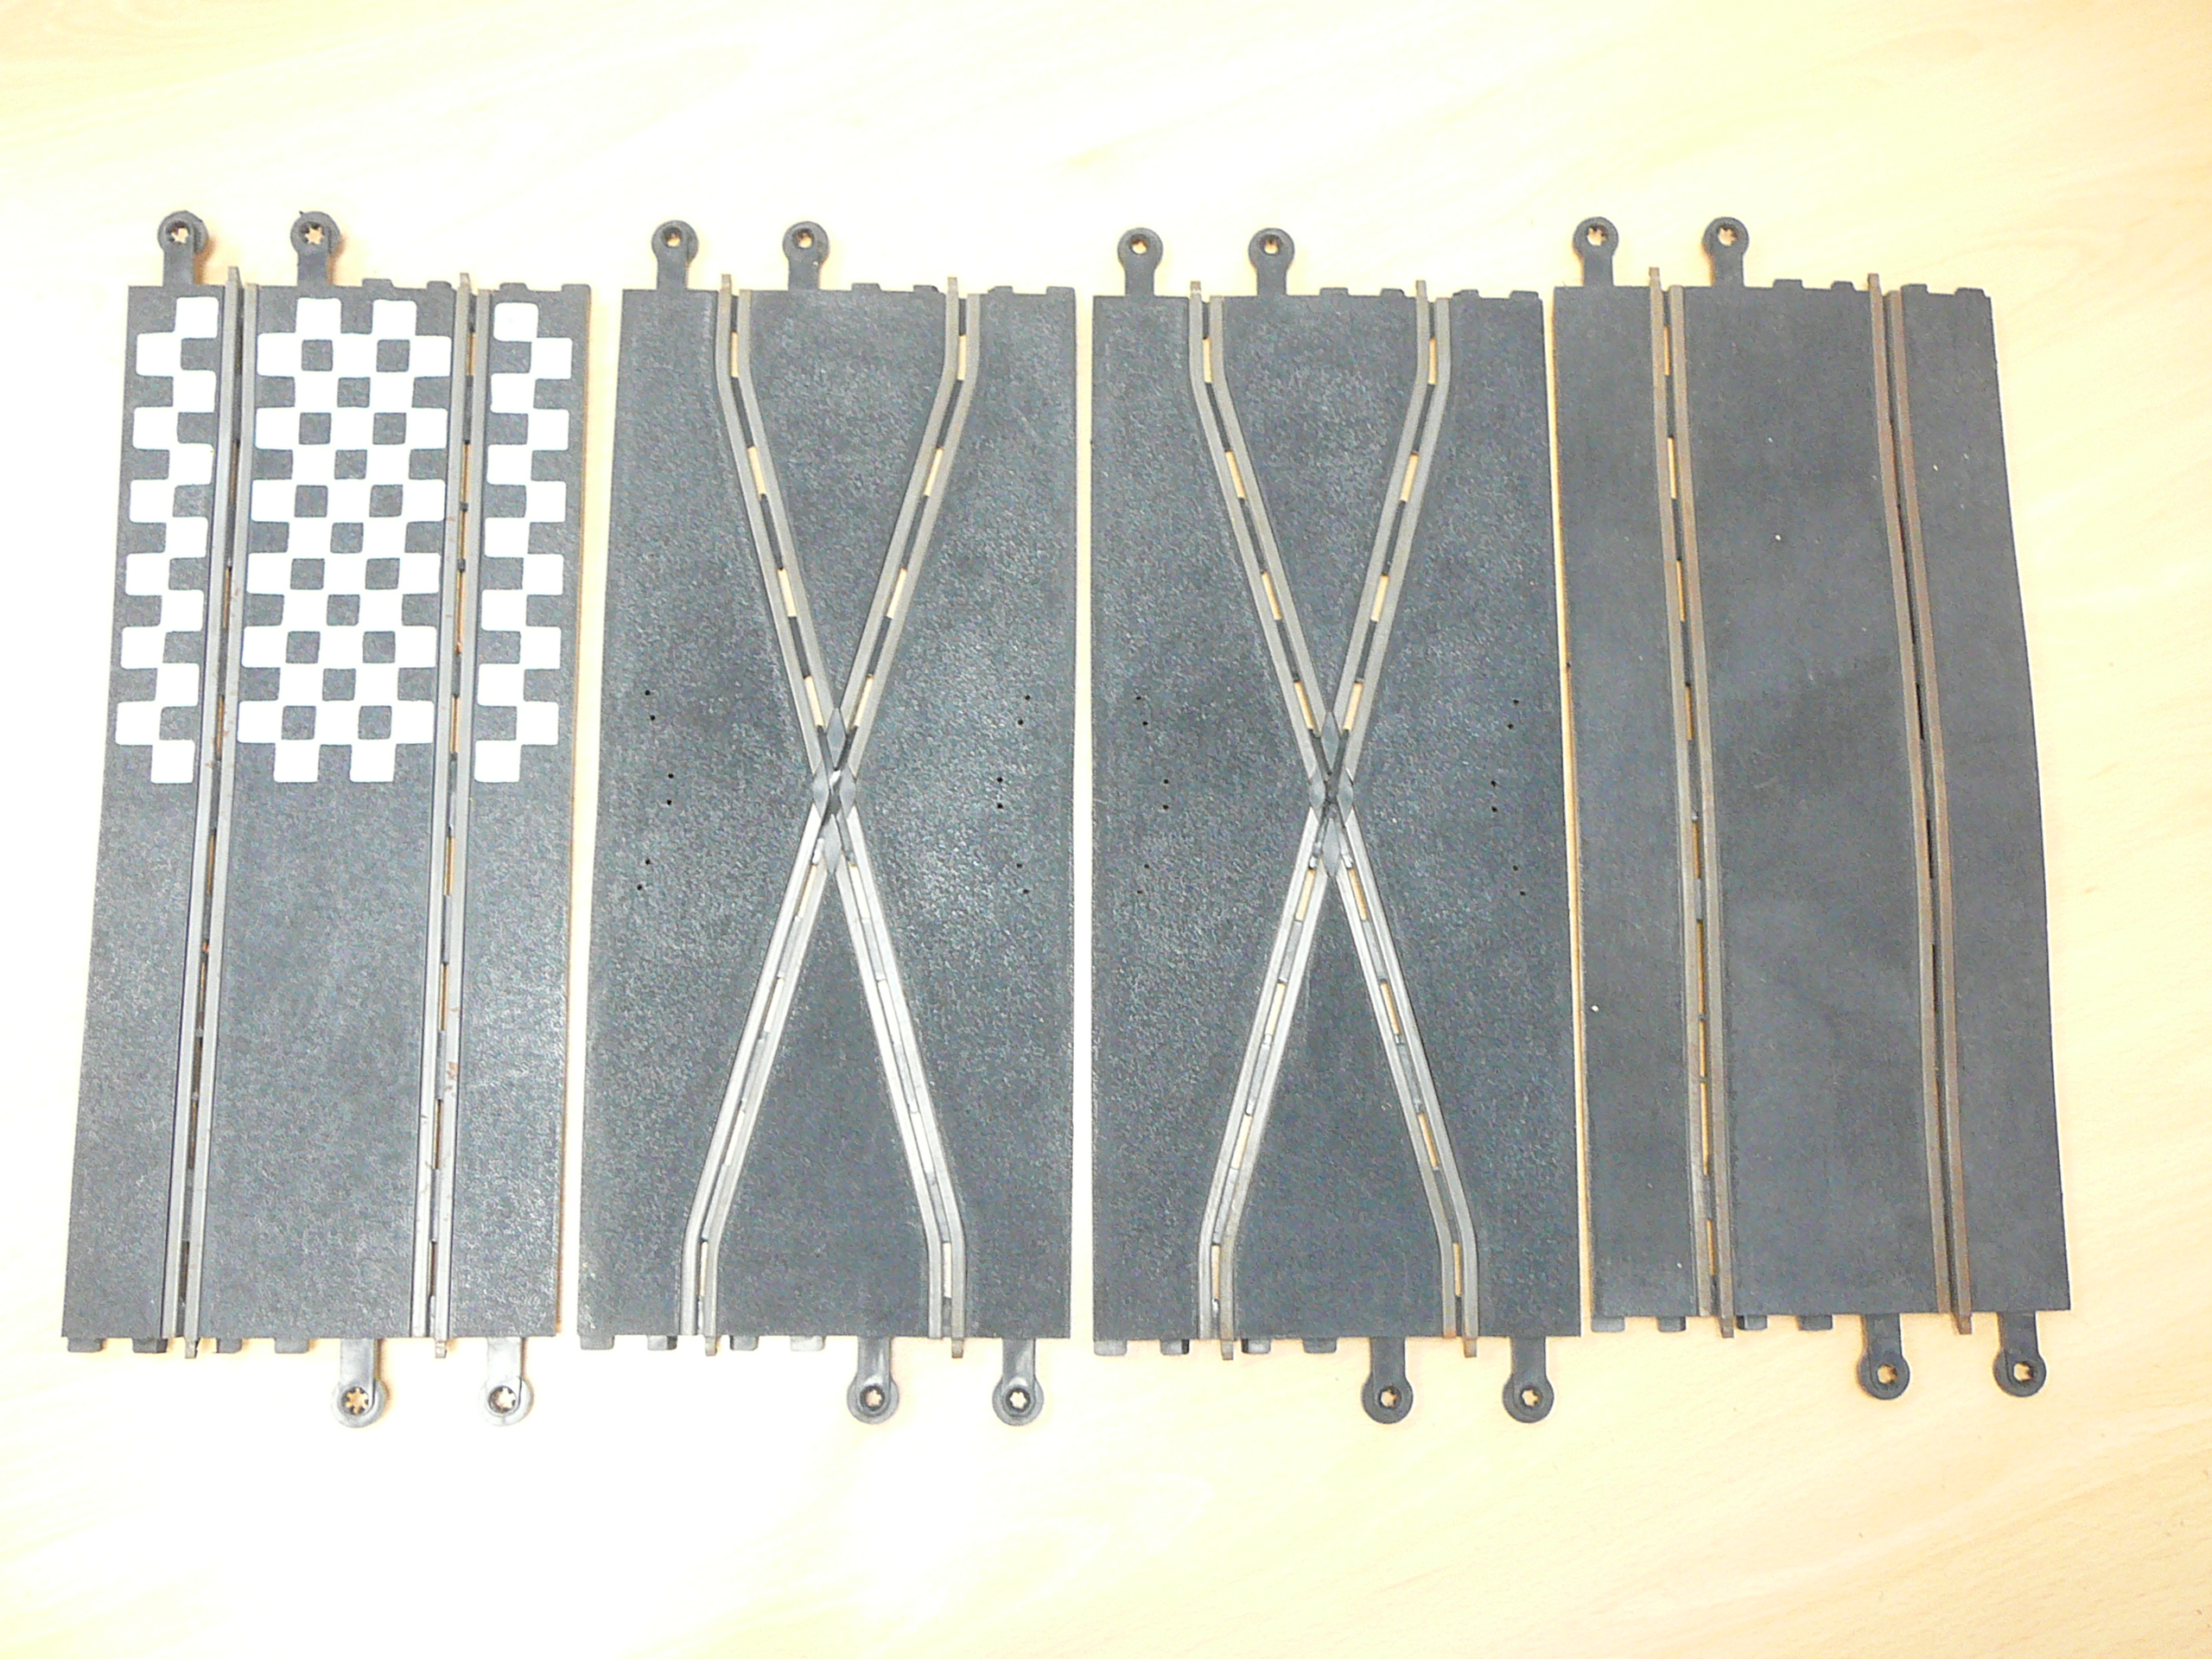 Lot 414 - Vintage Scalextric track